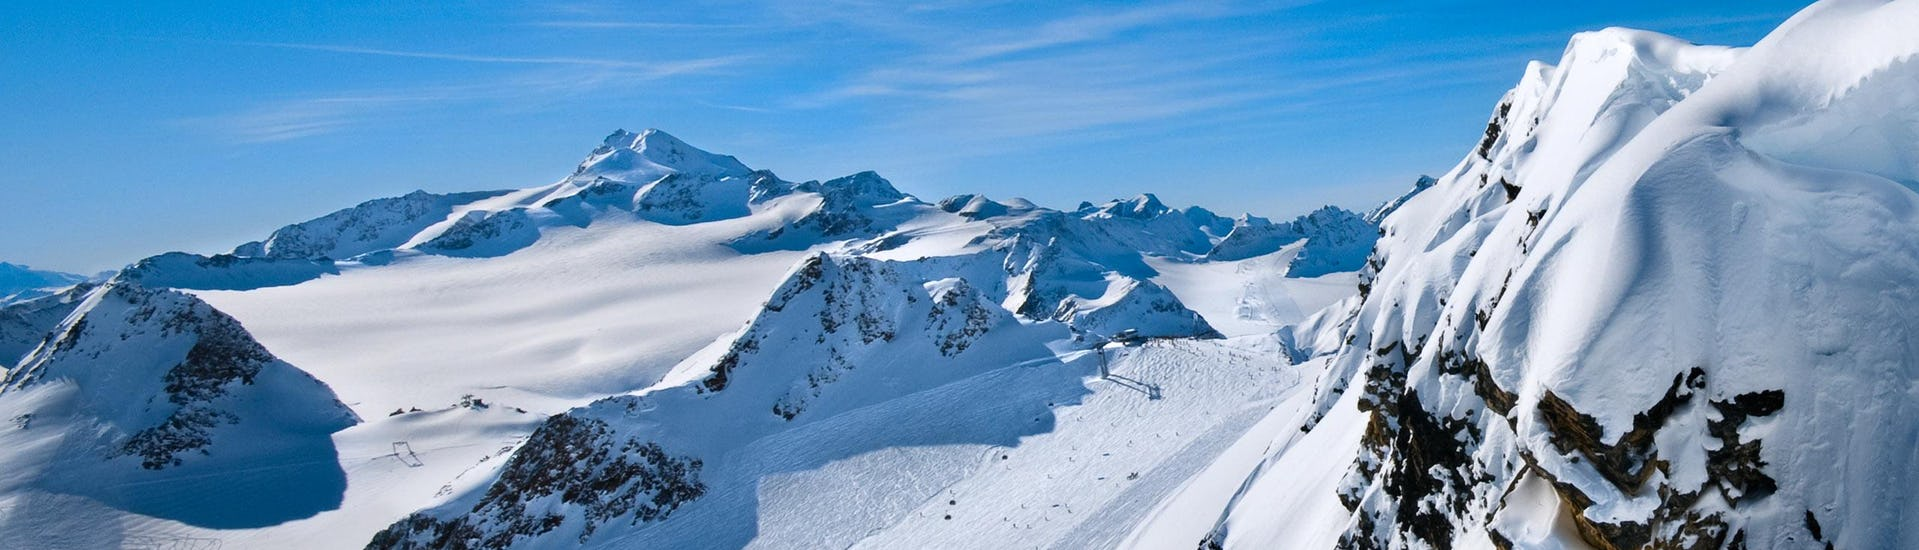 A view of a snowy mountain top in the ski resort of Pelvoux, where ski schools gather to start their ski lessons.